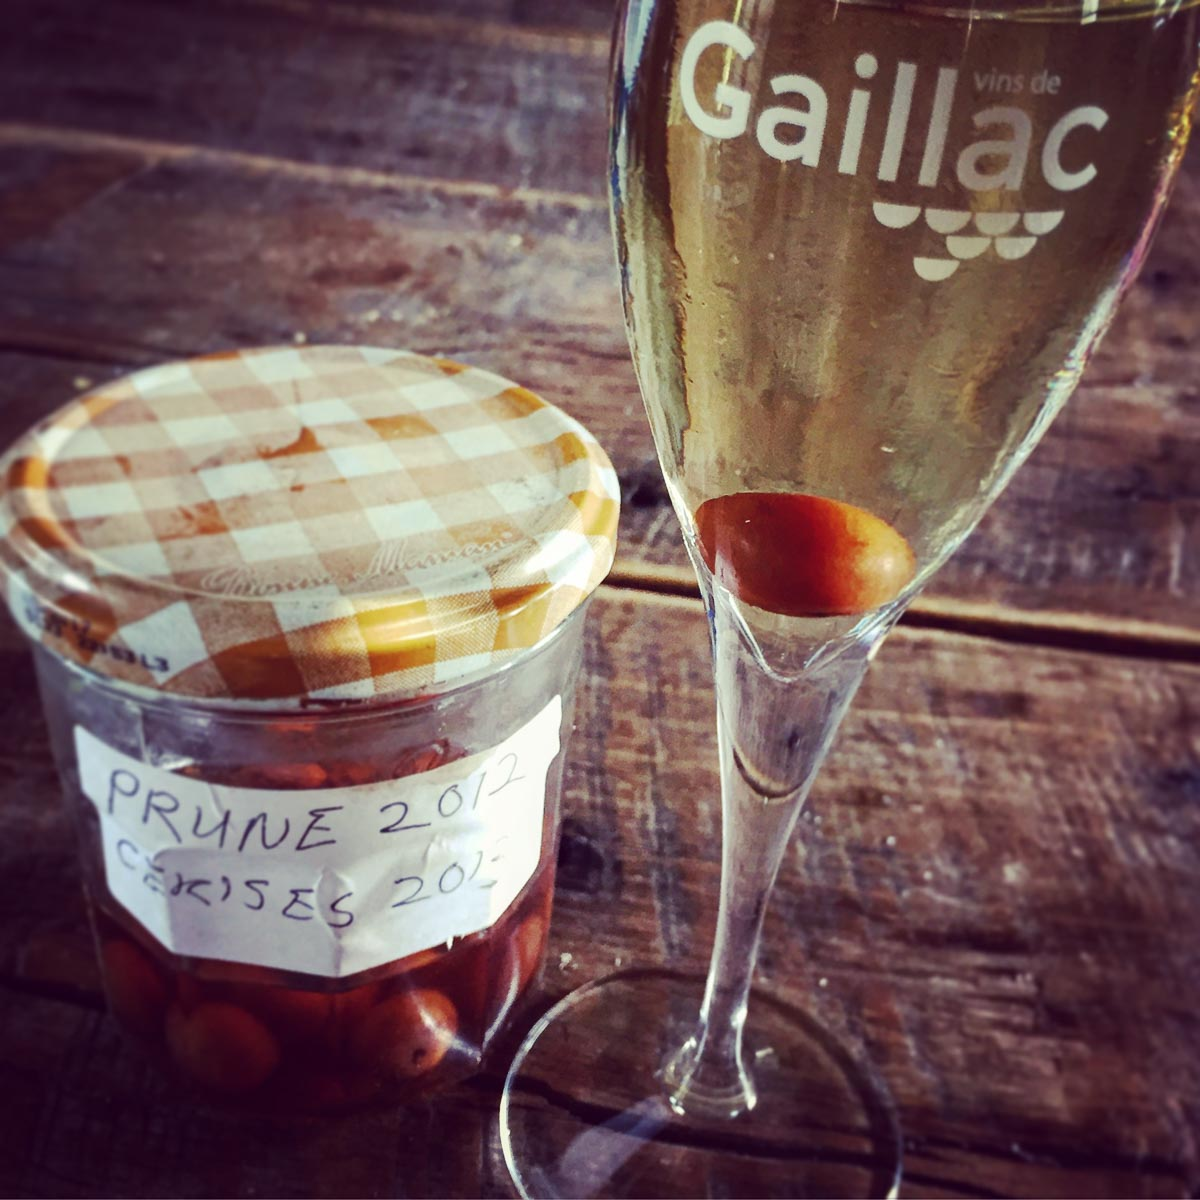 Steeped prunes with Gaillac Wine